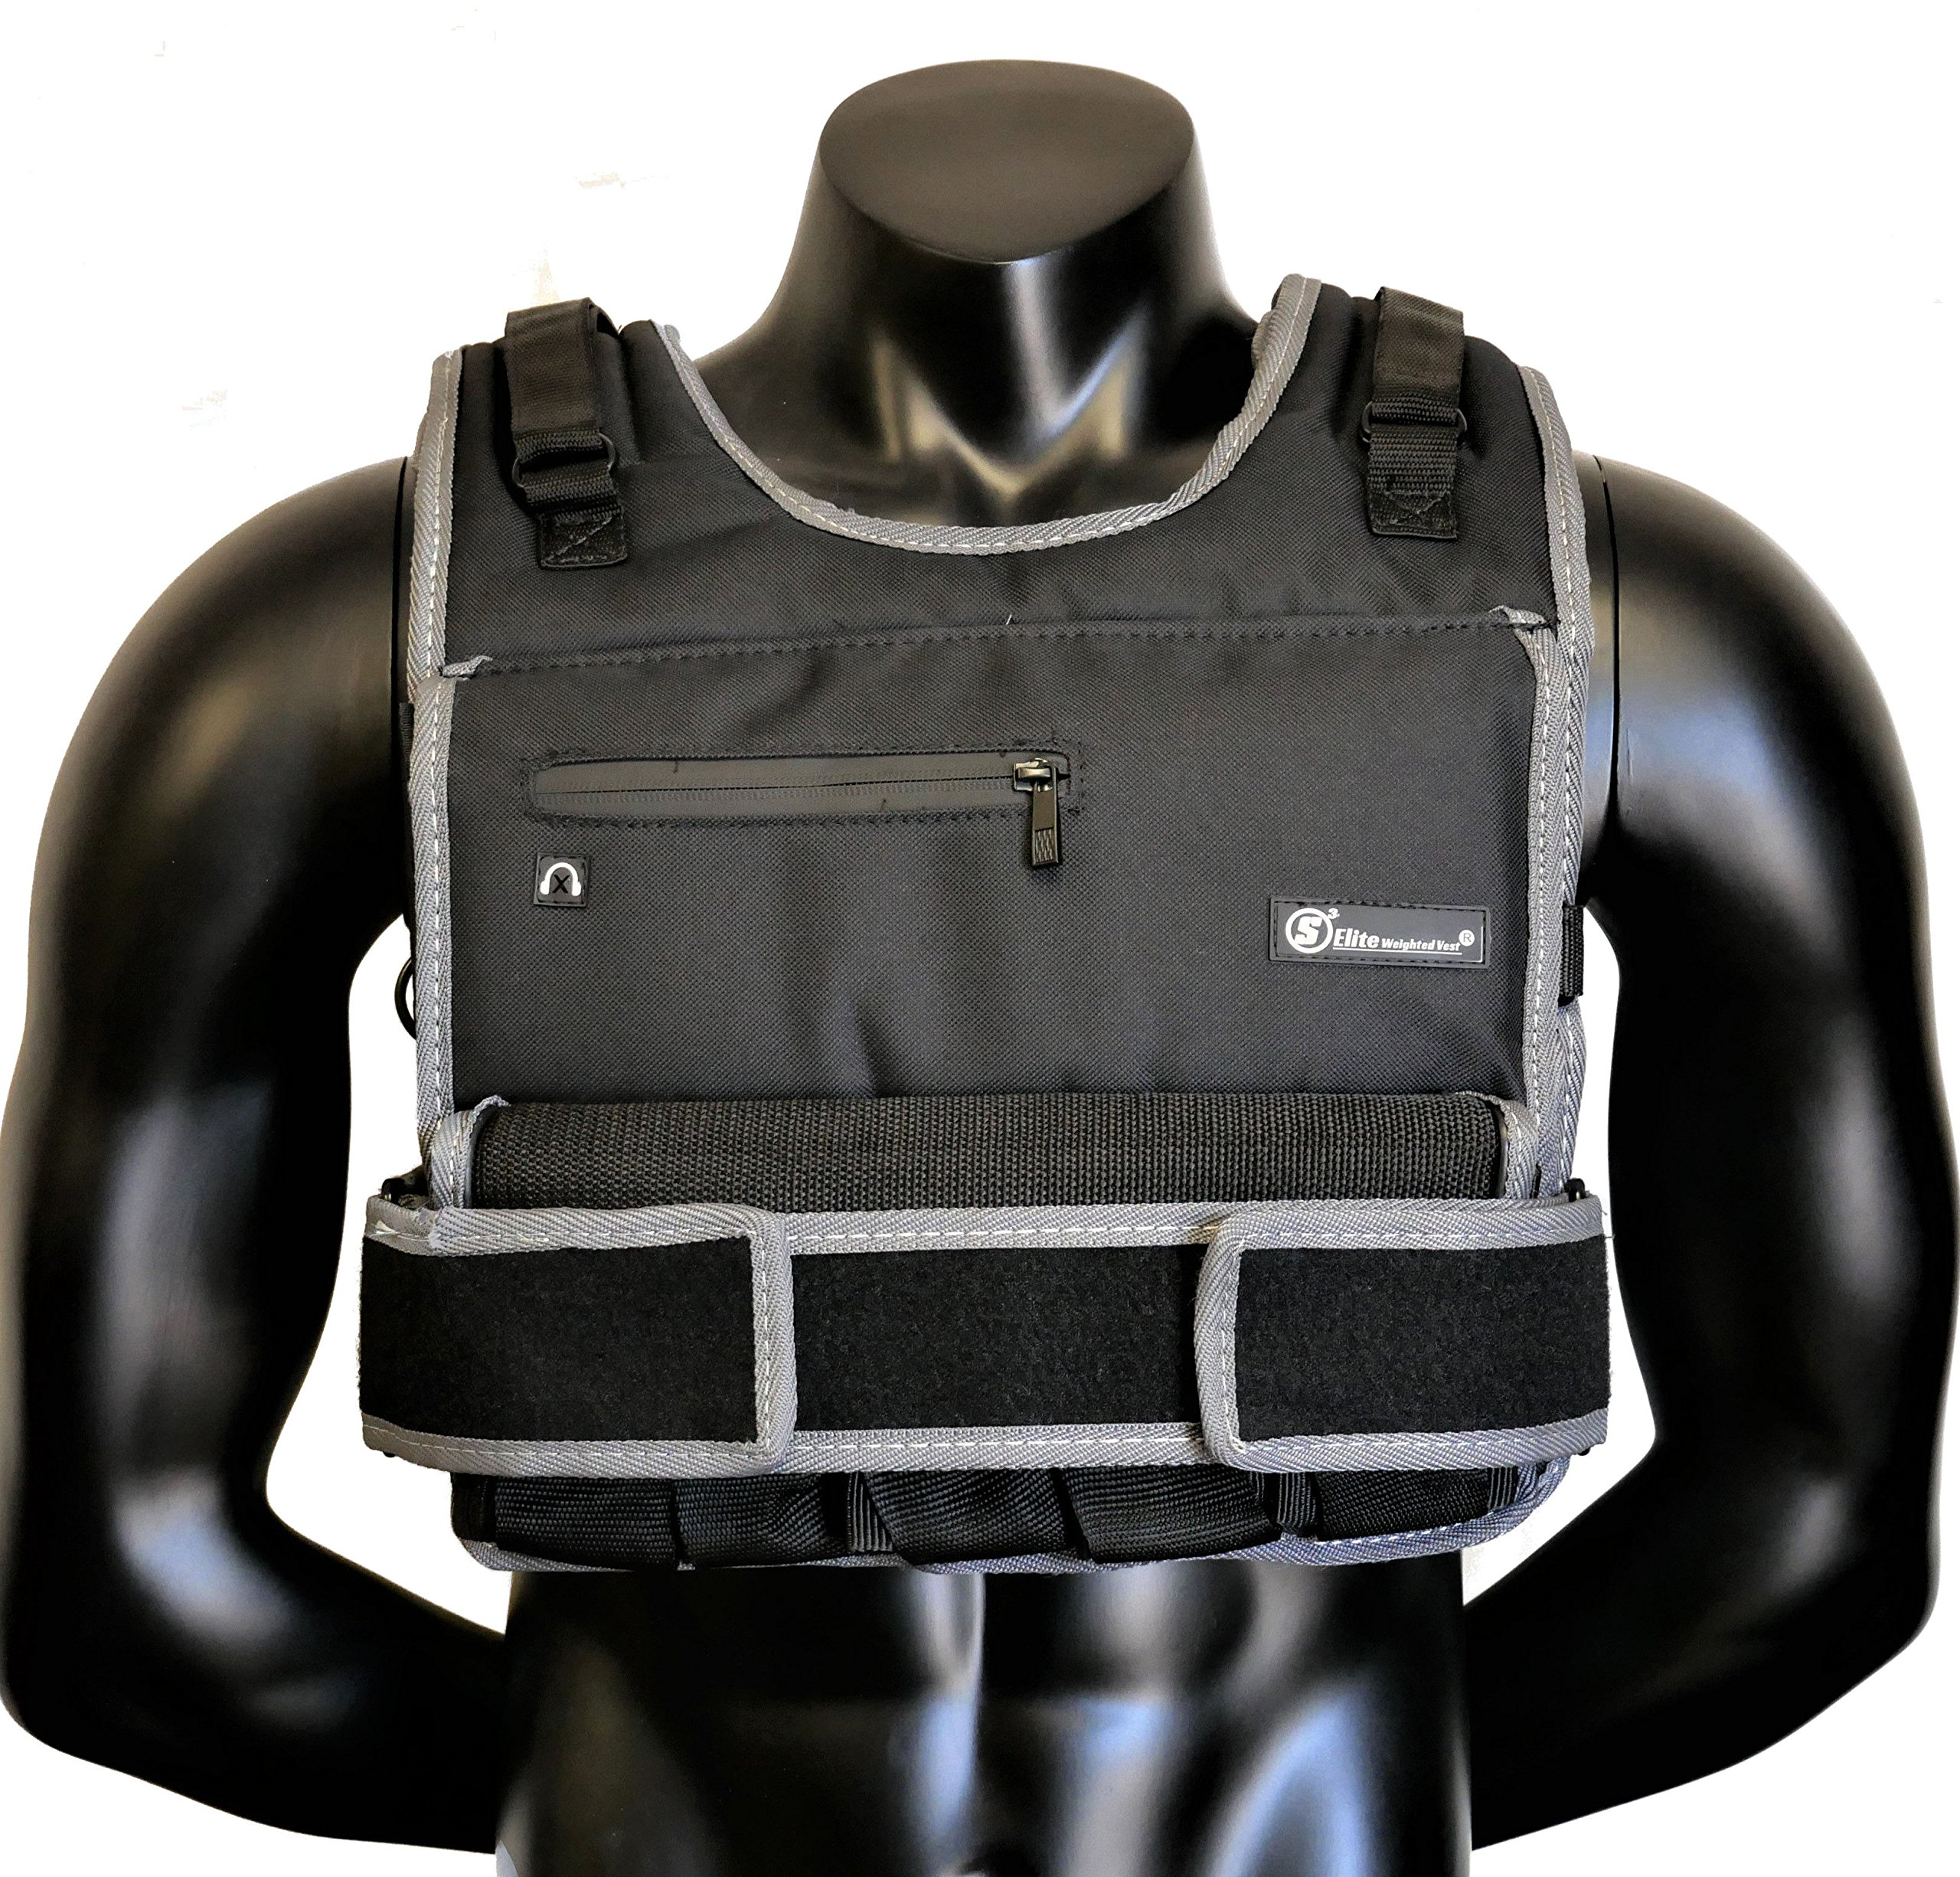 Strength sport systems Weight Vest (Short) - Premium Quality - Best for Cross fit Training - Running - Jogging - Fully Adjustable (S pro Weight Vest) (Elite II - Black, 70lbs(Iron bar Set))